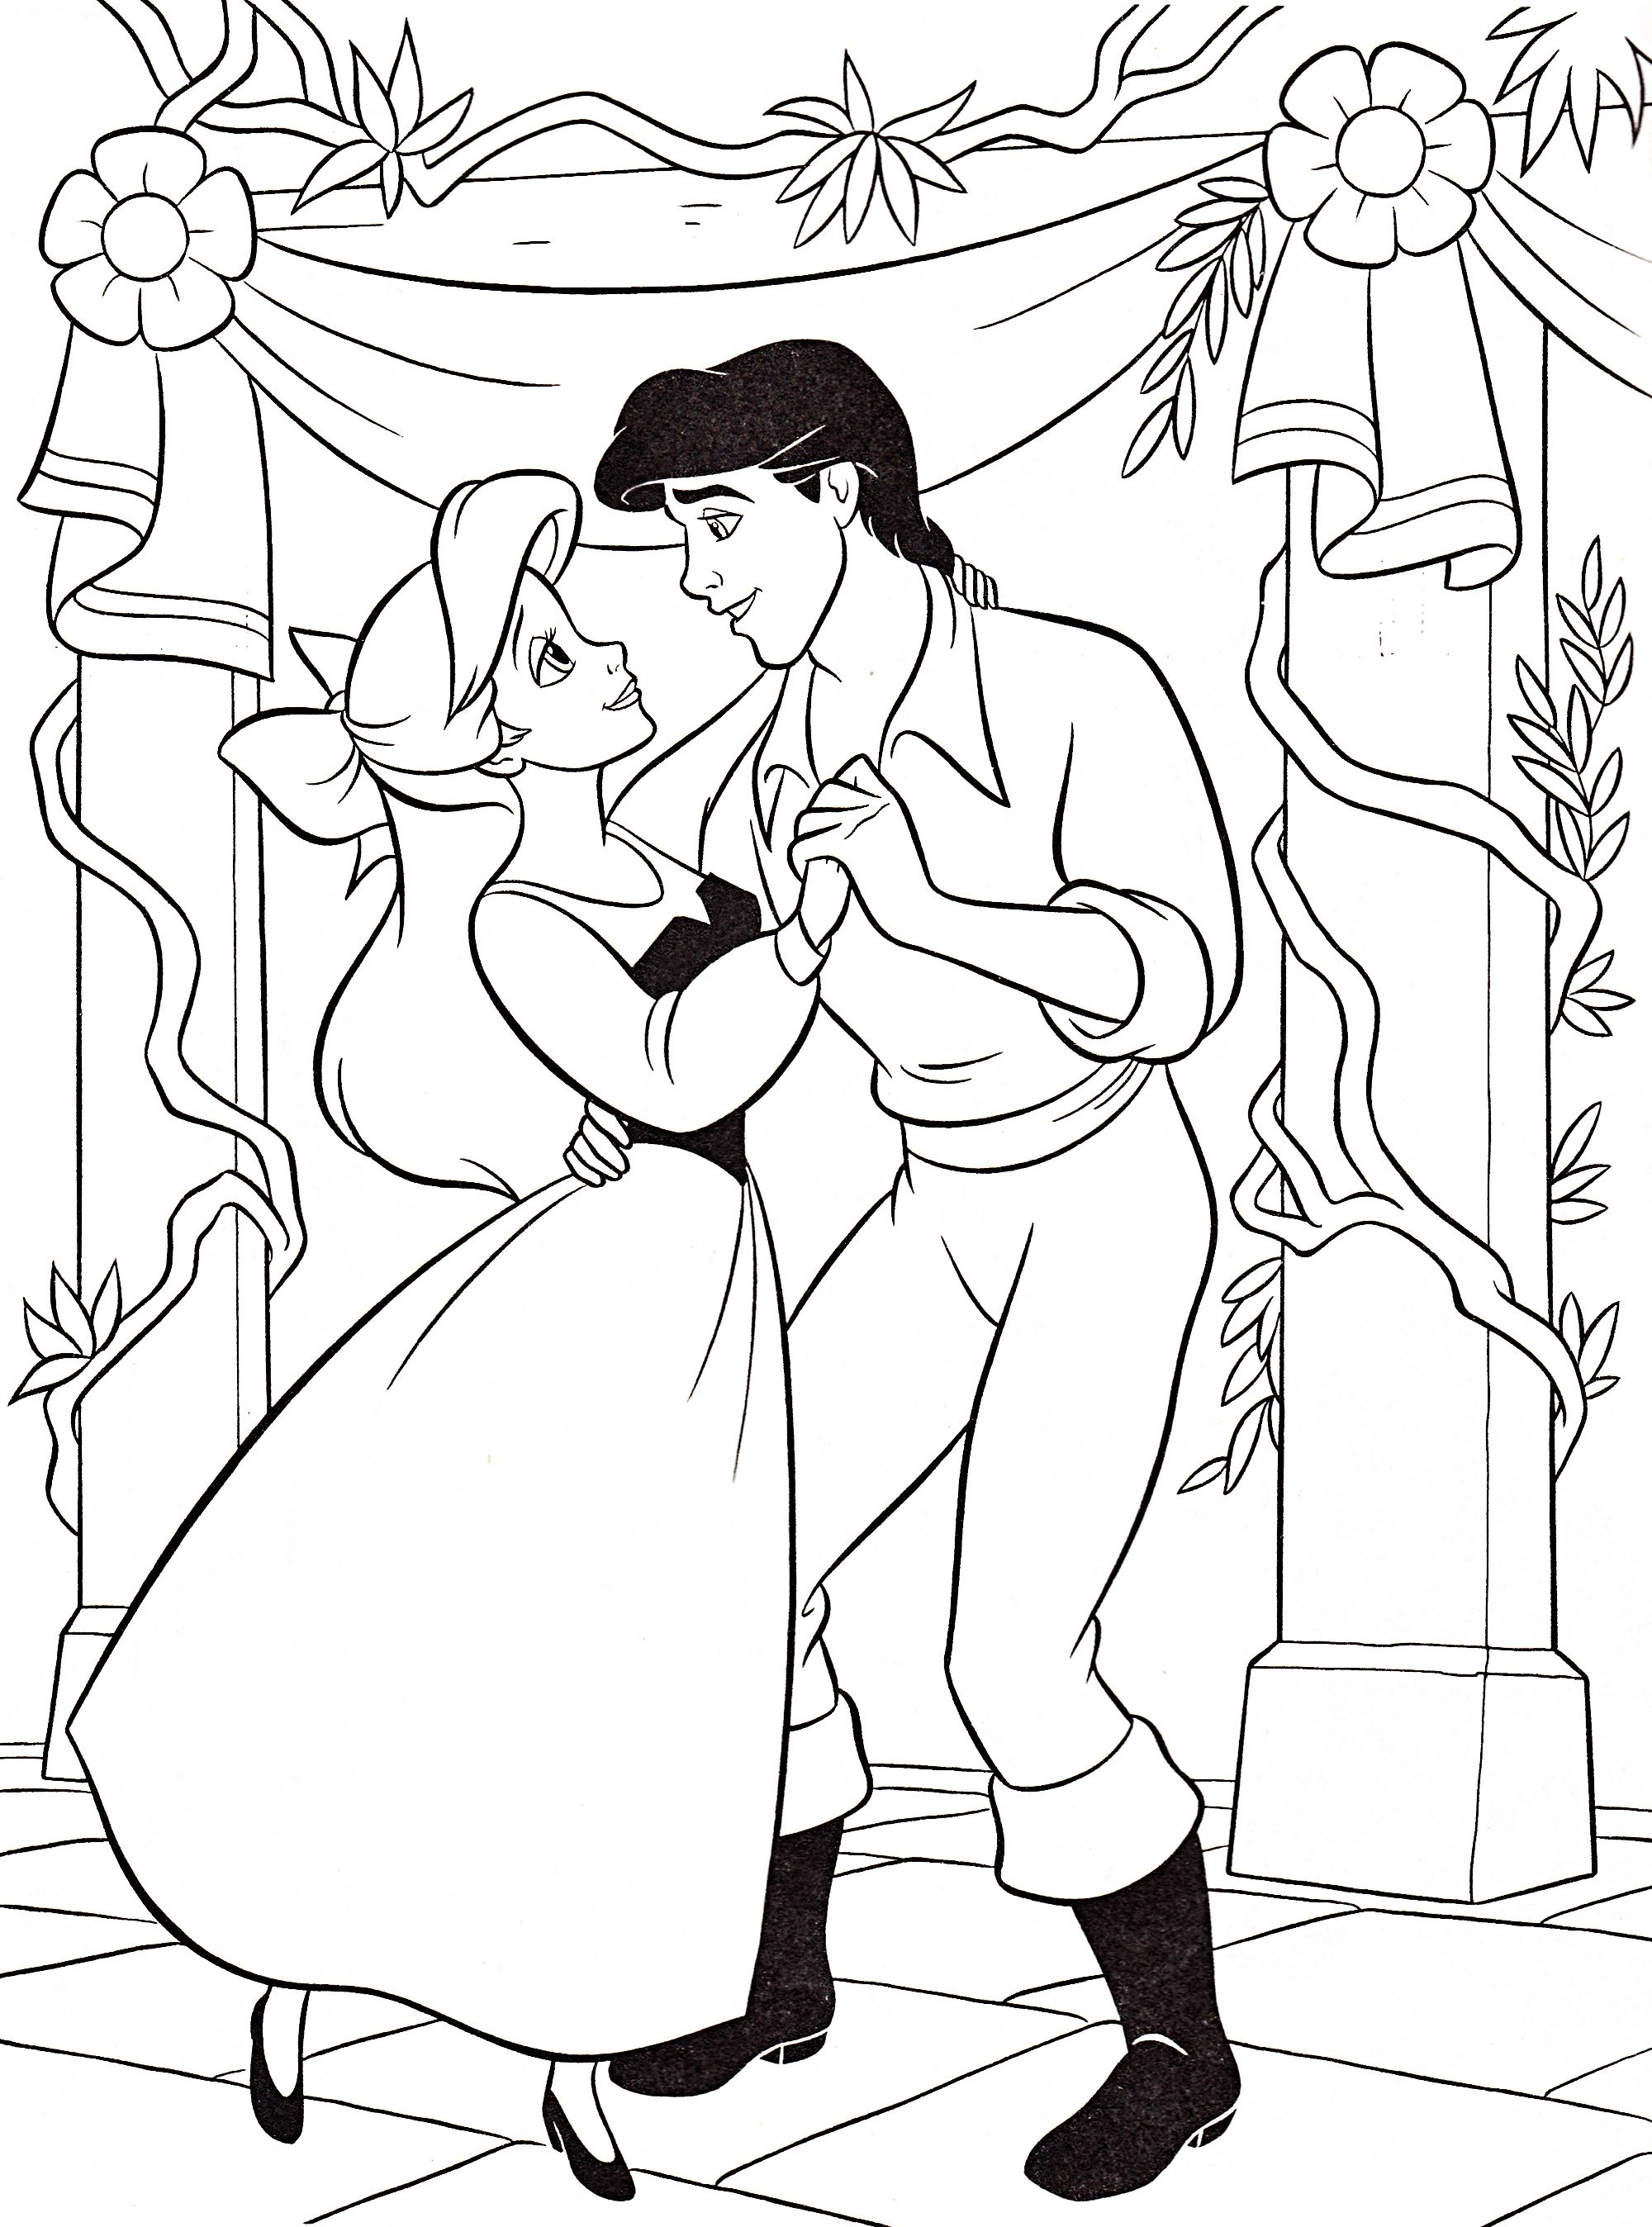 disney tangled coloring pages printable Walt Disney